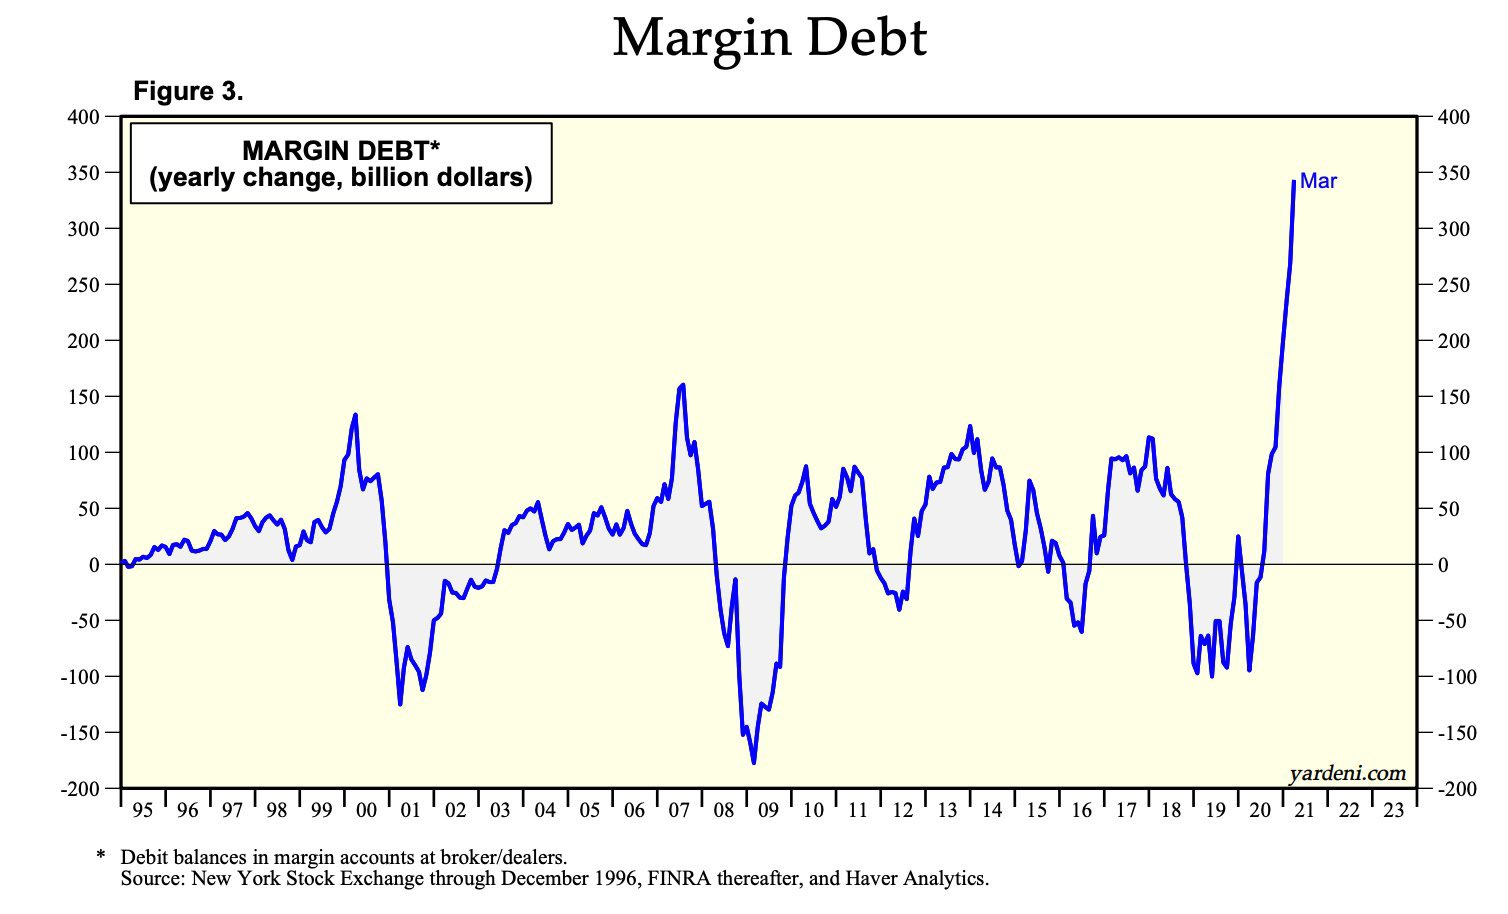 The yearly change in margin debt is twice as big as previous bubble tops in 2000 & 2008 !!